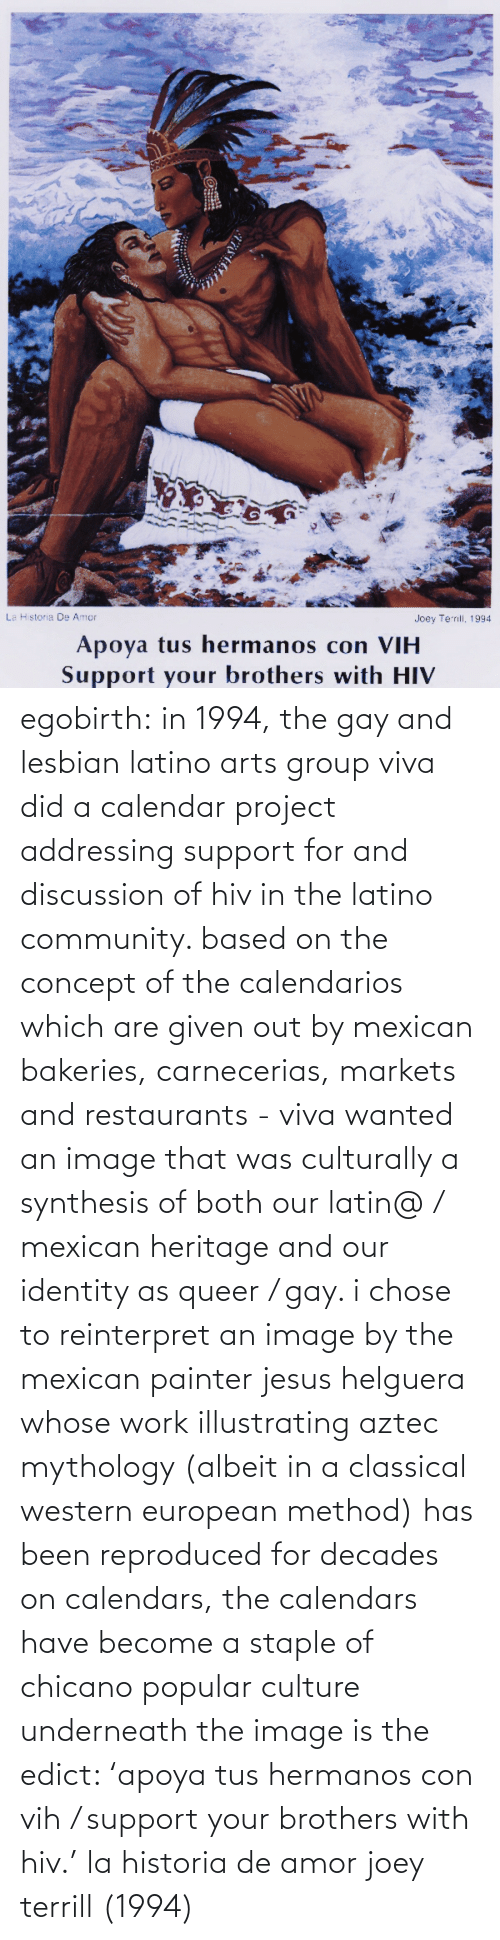 synthesis: La Historia De Amor  Joey Terrill, 1994  Apoya tus hermanos con VIH  Support your brothers with HIV egobirth:  in 1994, the gay and lesbian latino arts group viva did a calendar project addressing support for and discussion of hiv in the latino community. based on the concept of the calendarios which are given out by mexican bakeries, carnecerias, markets and restaurants - viva wanted an image that was culturally a synthesis of both our latin@ / mexican heritage and our identity as queer / gay. i chose to reinterpret an image by the mexican painter jesus helguera whose work illustrating aztec mythology (albeit in a classical western european method) has been reproduced for decades on calendars, the calendars have become a staple of chicano popular culture   underneath the image is the edict: 'apoya tus hermanos con vih / support your brothers with hiv.'    la historia de amor joey terrill (1994)